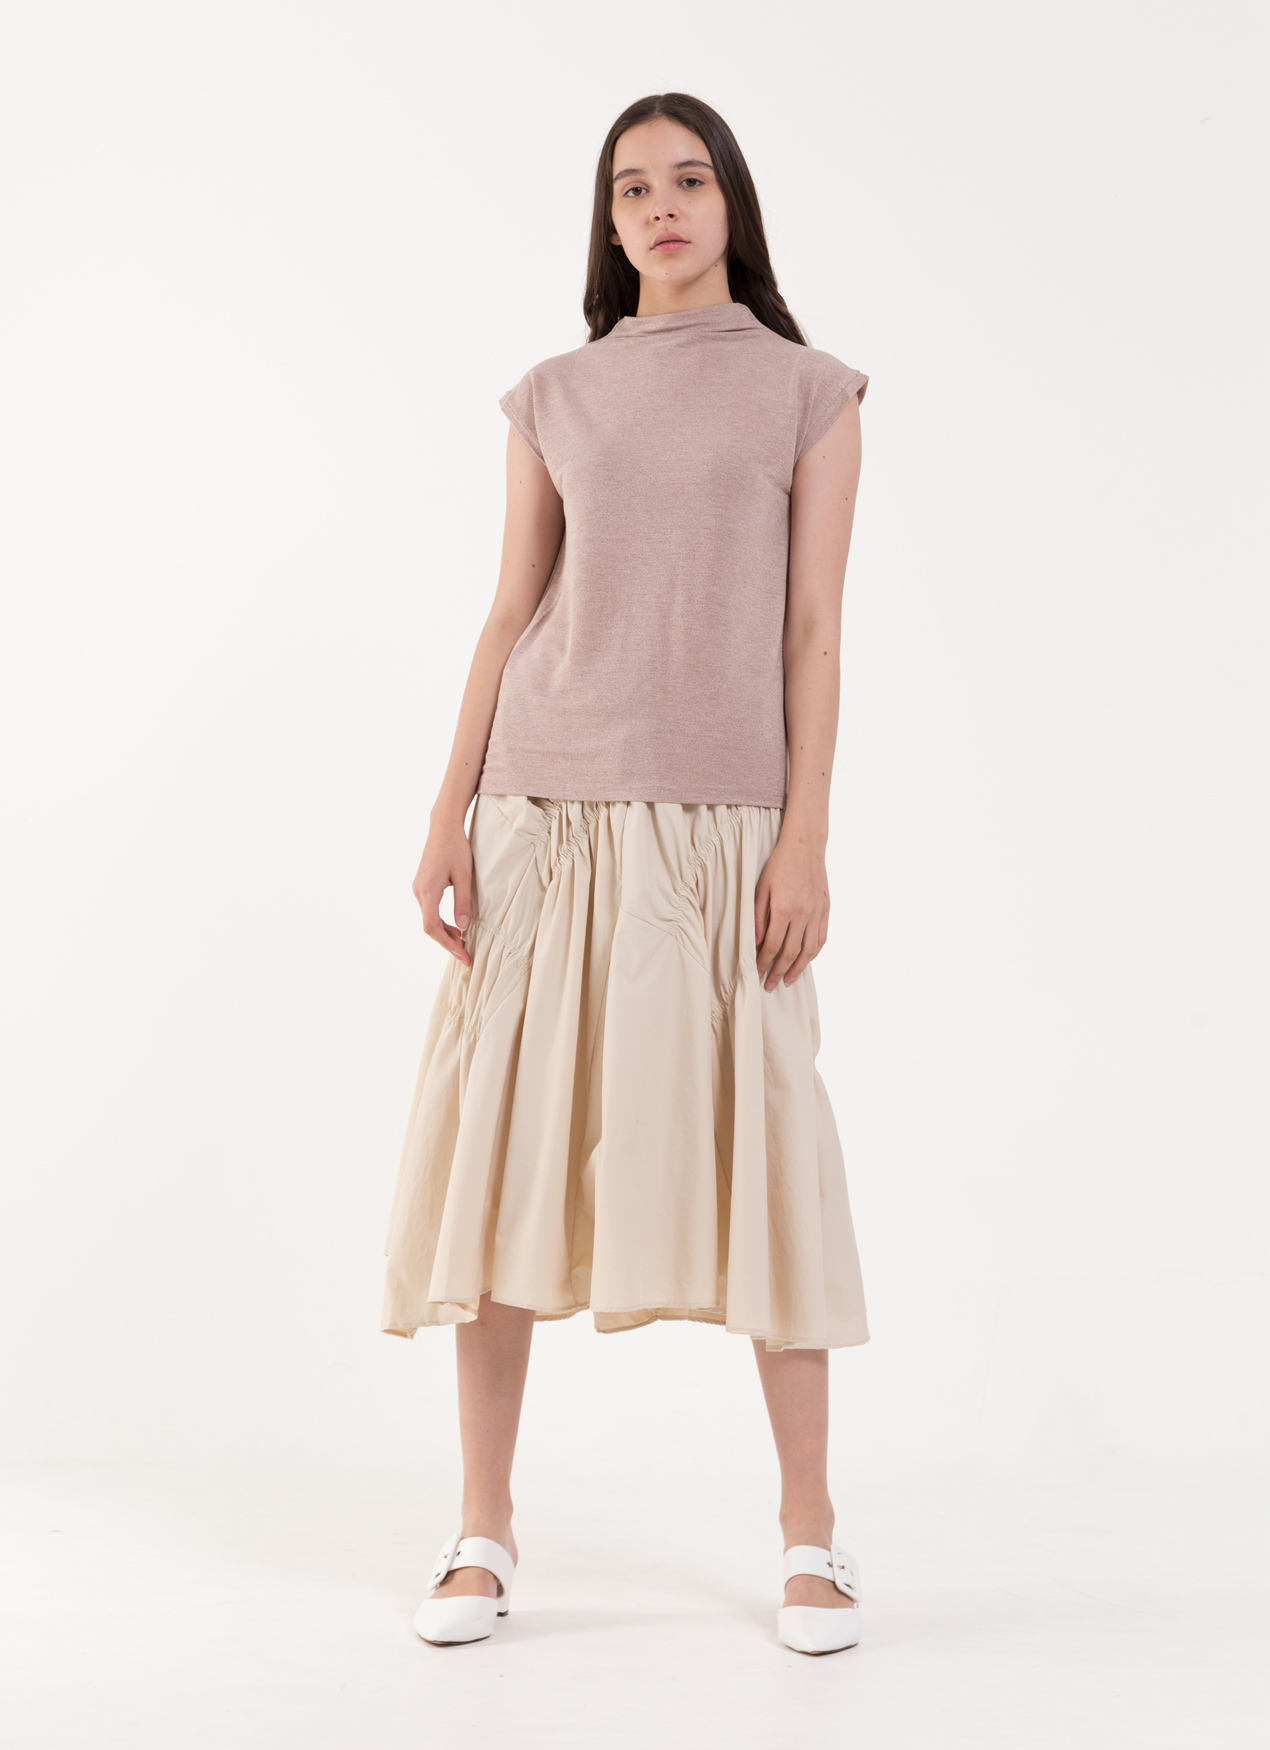 BOWN Joce Top - Dusty Pink